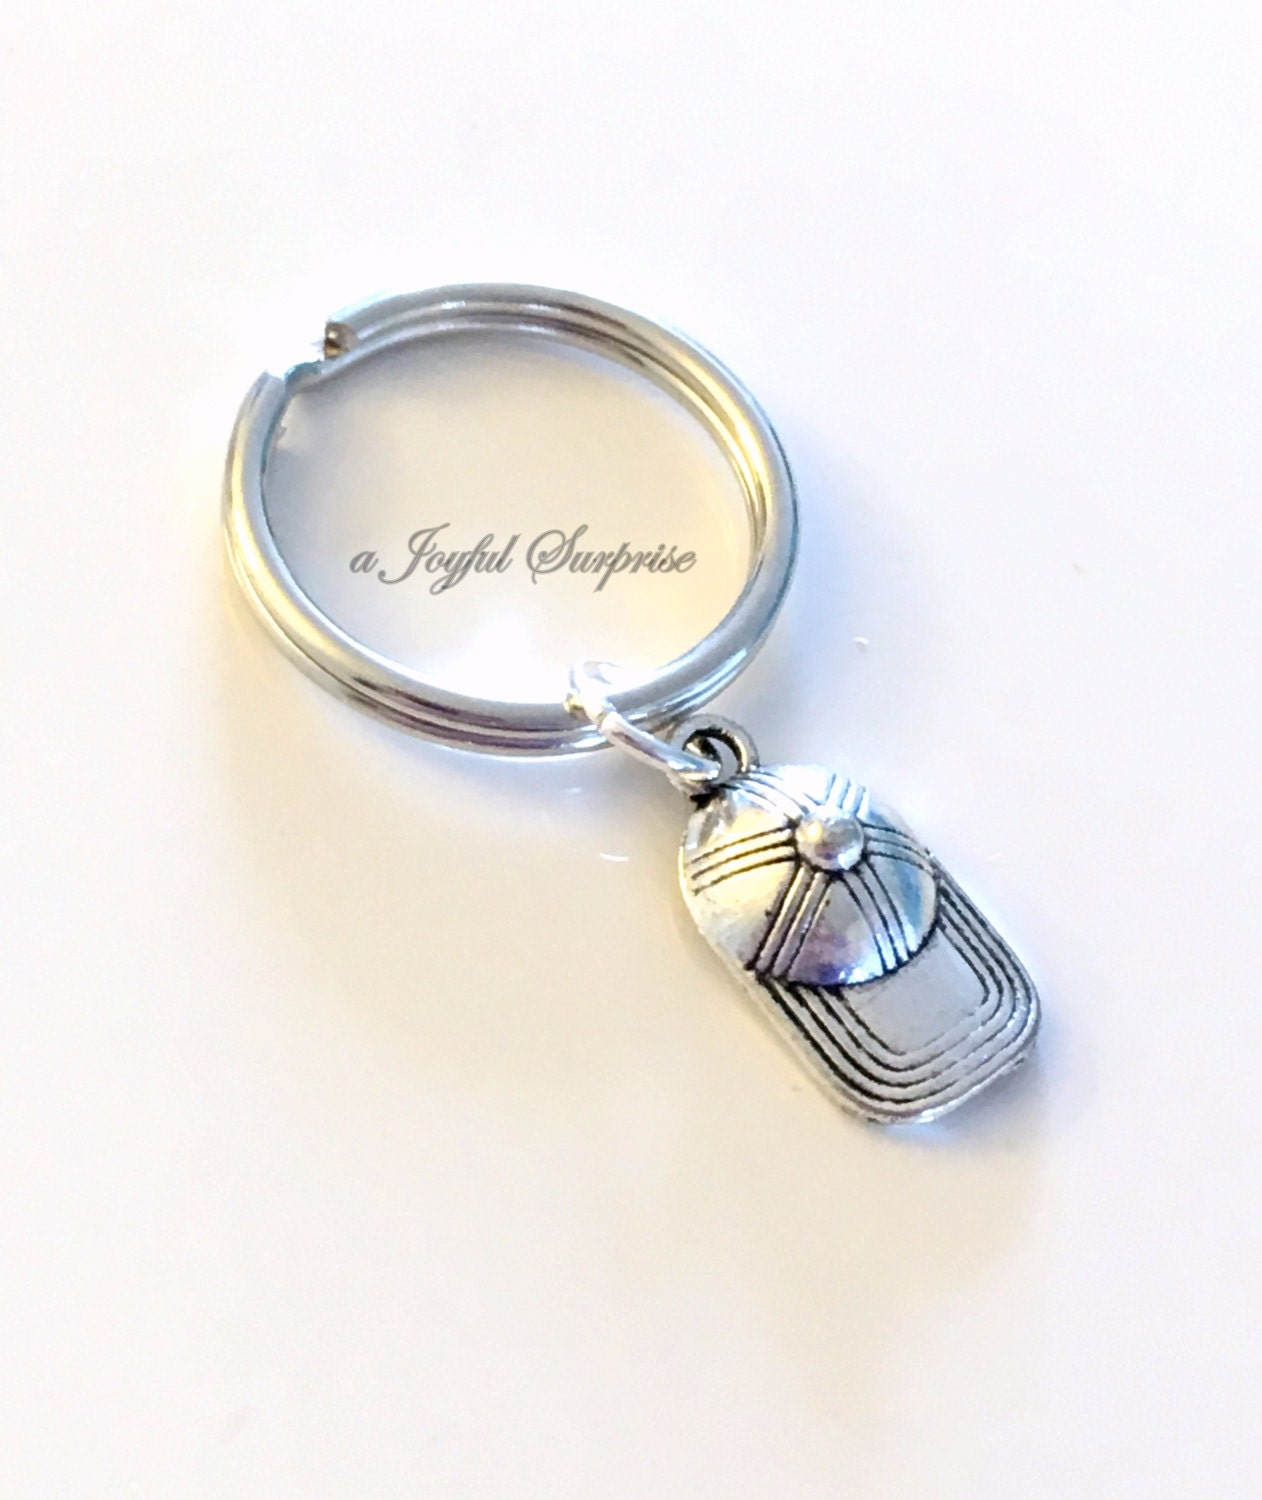 8d039280554a4 Gift for Boyfriend Keychain, Baseball Hat Keyring, Ball Player's Key ...